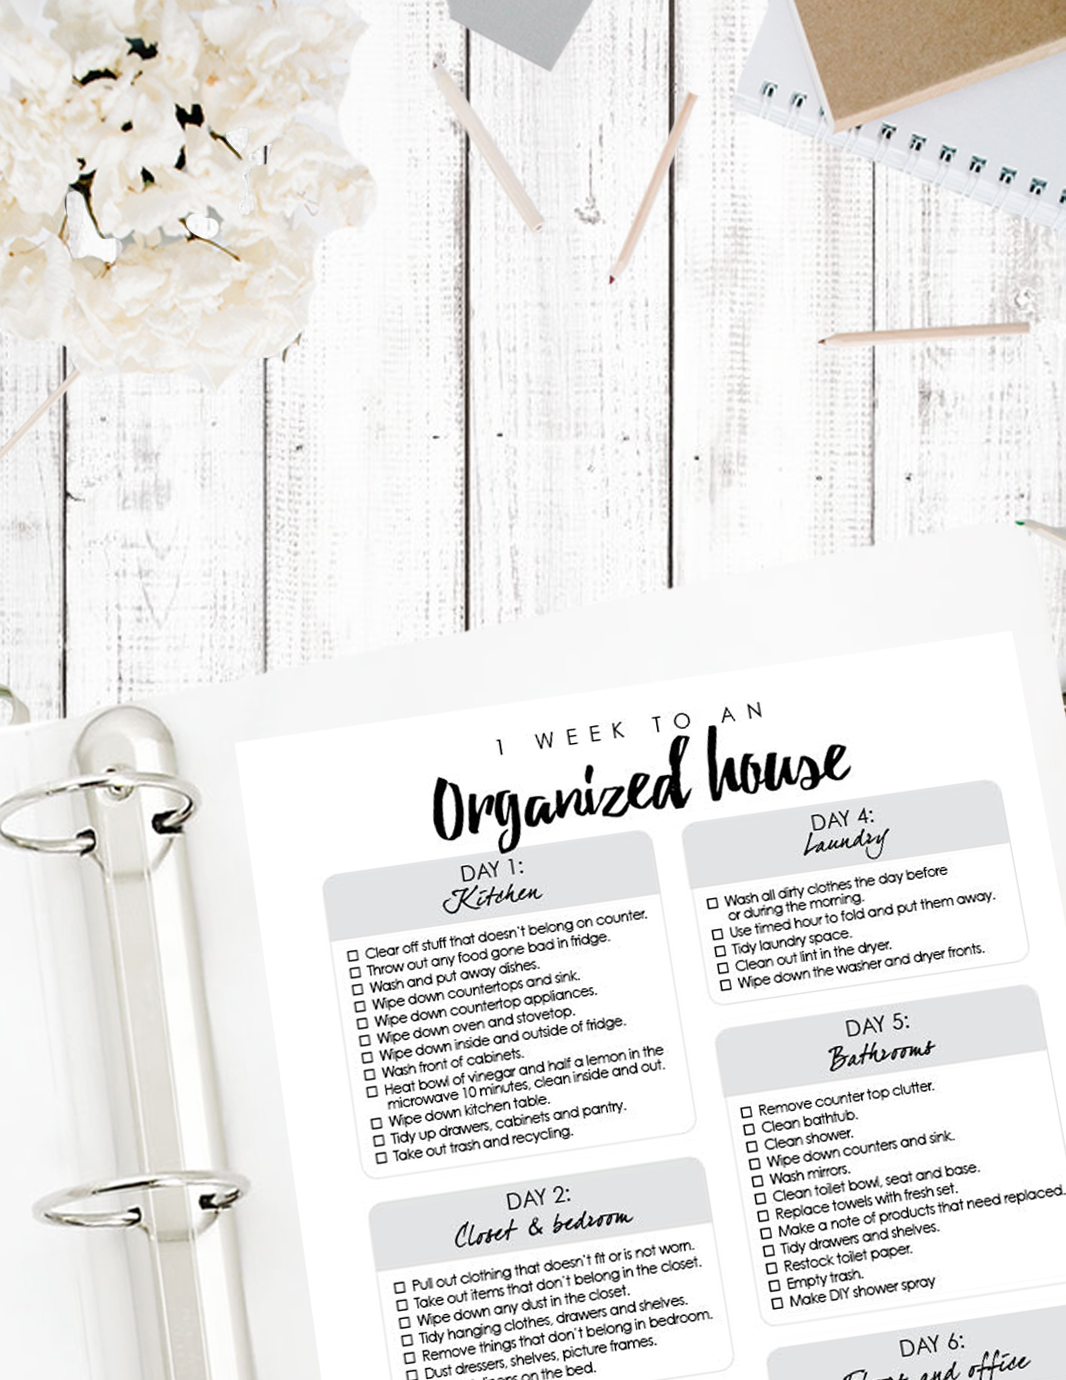 Ultimate organize house planner printables - one week to an organized house